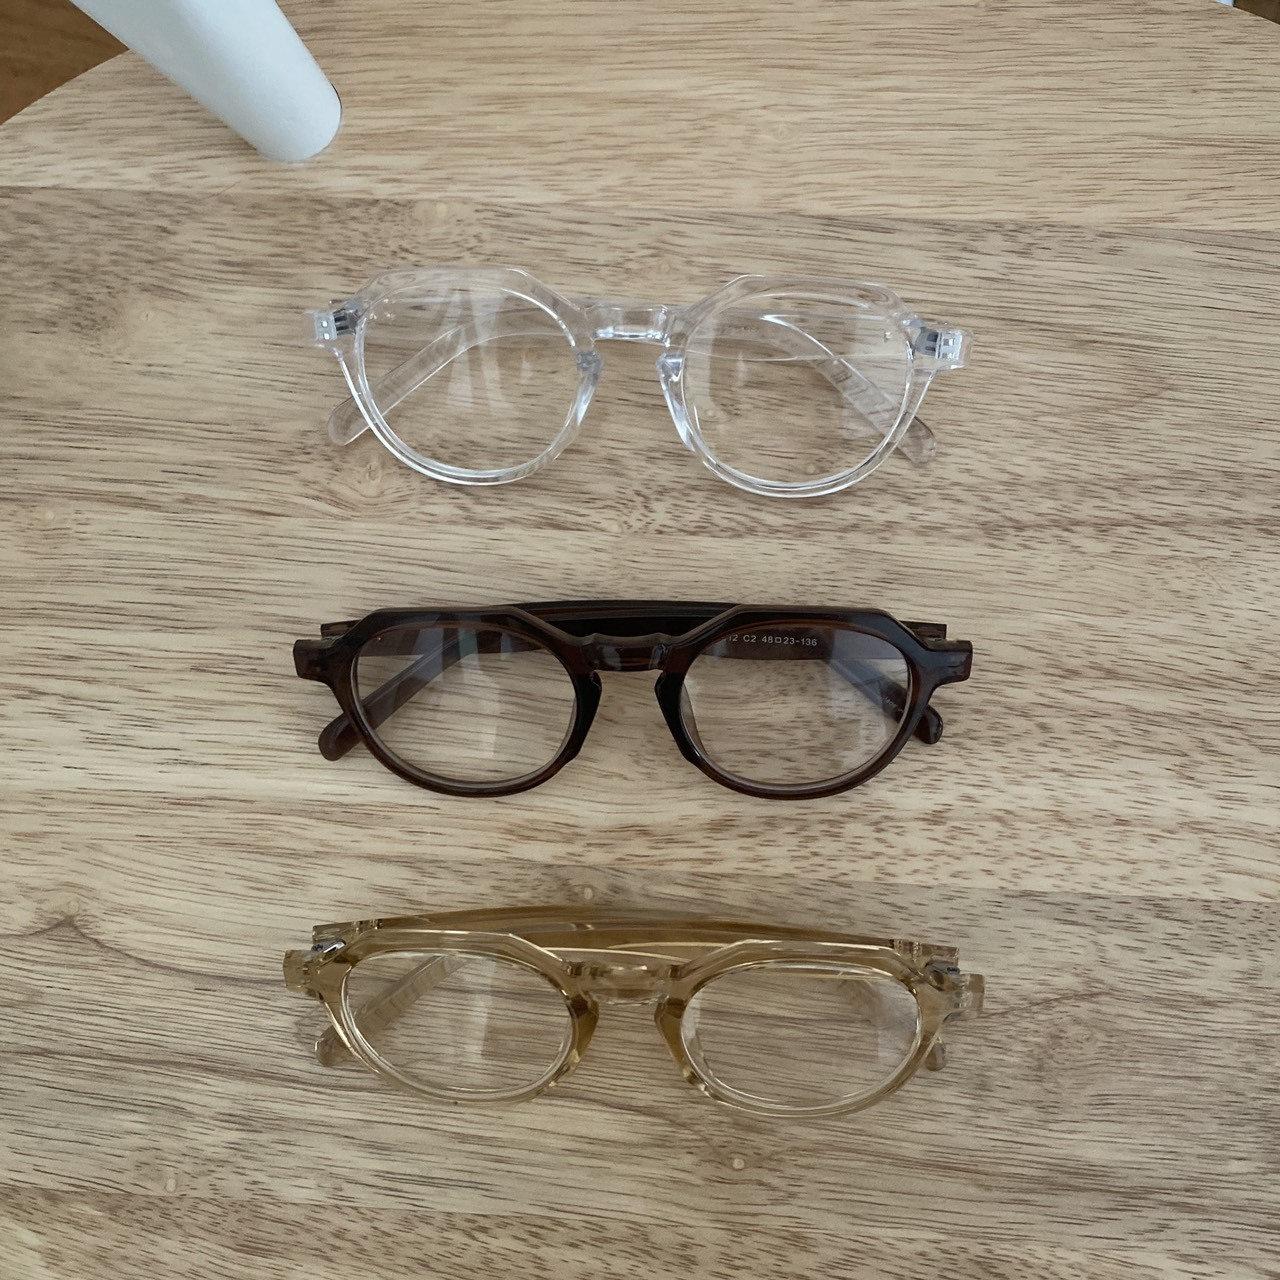 DAYNYC rectangle glasses